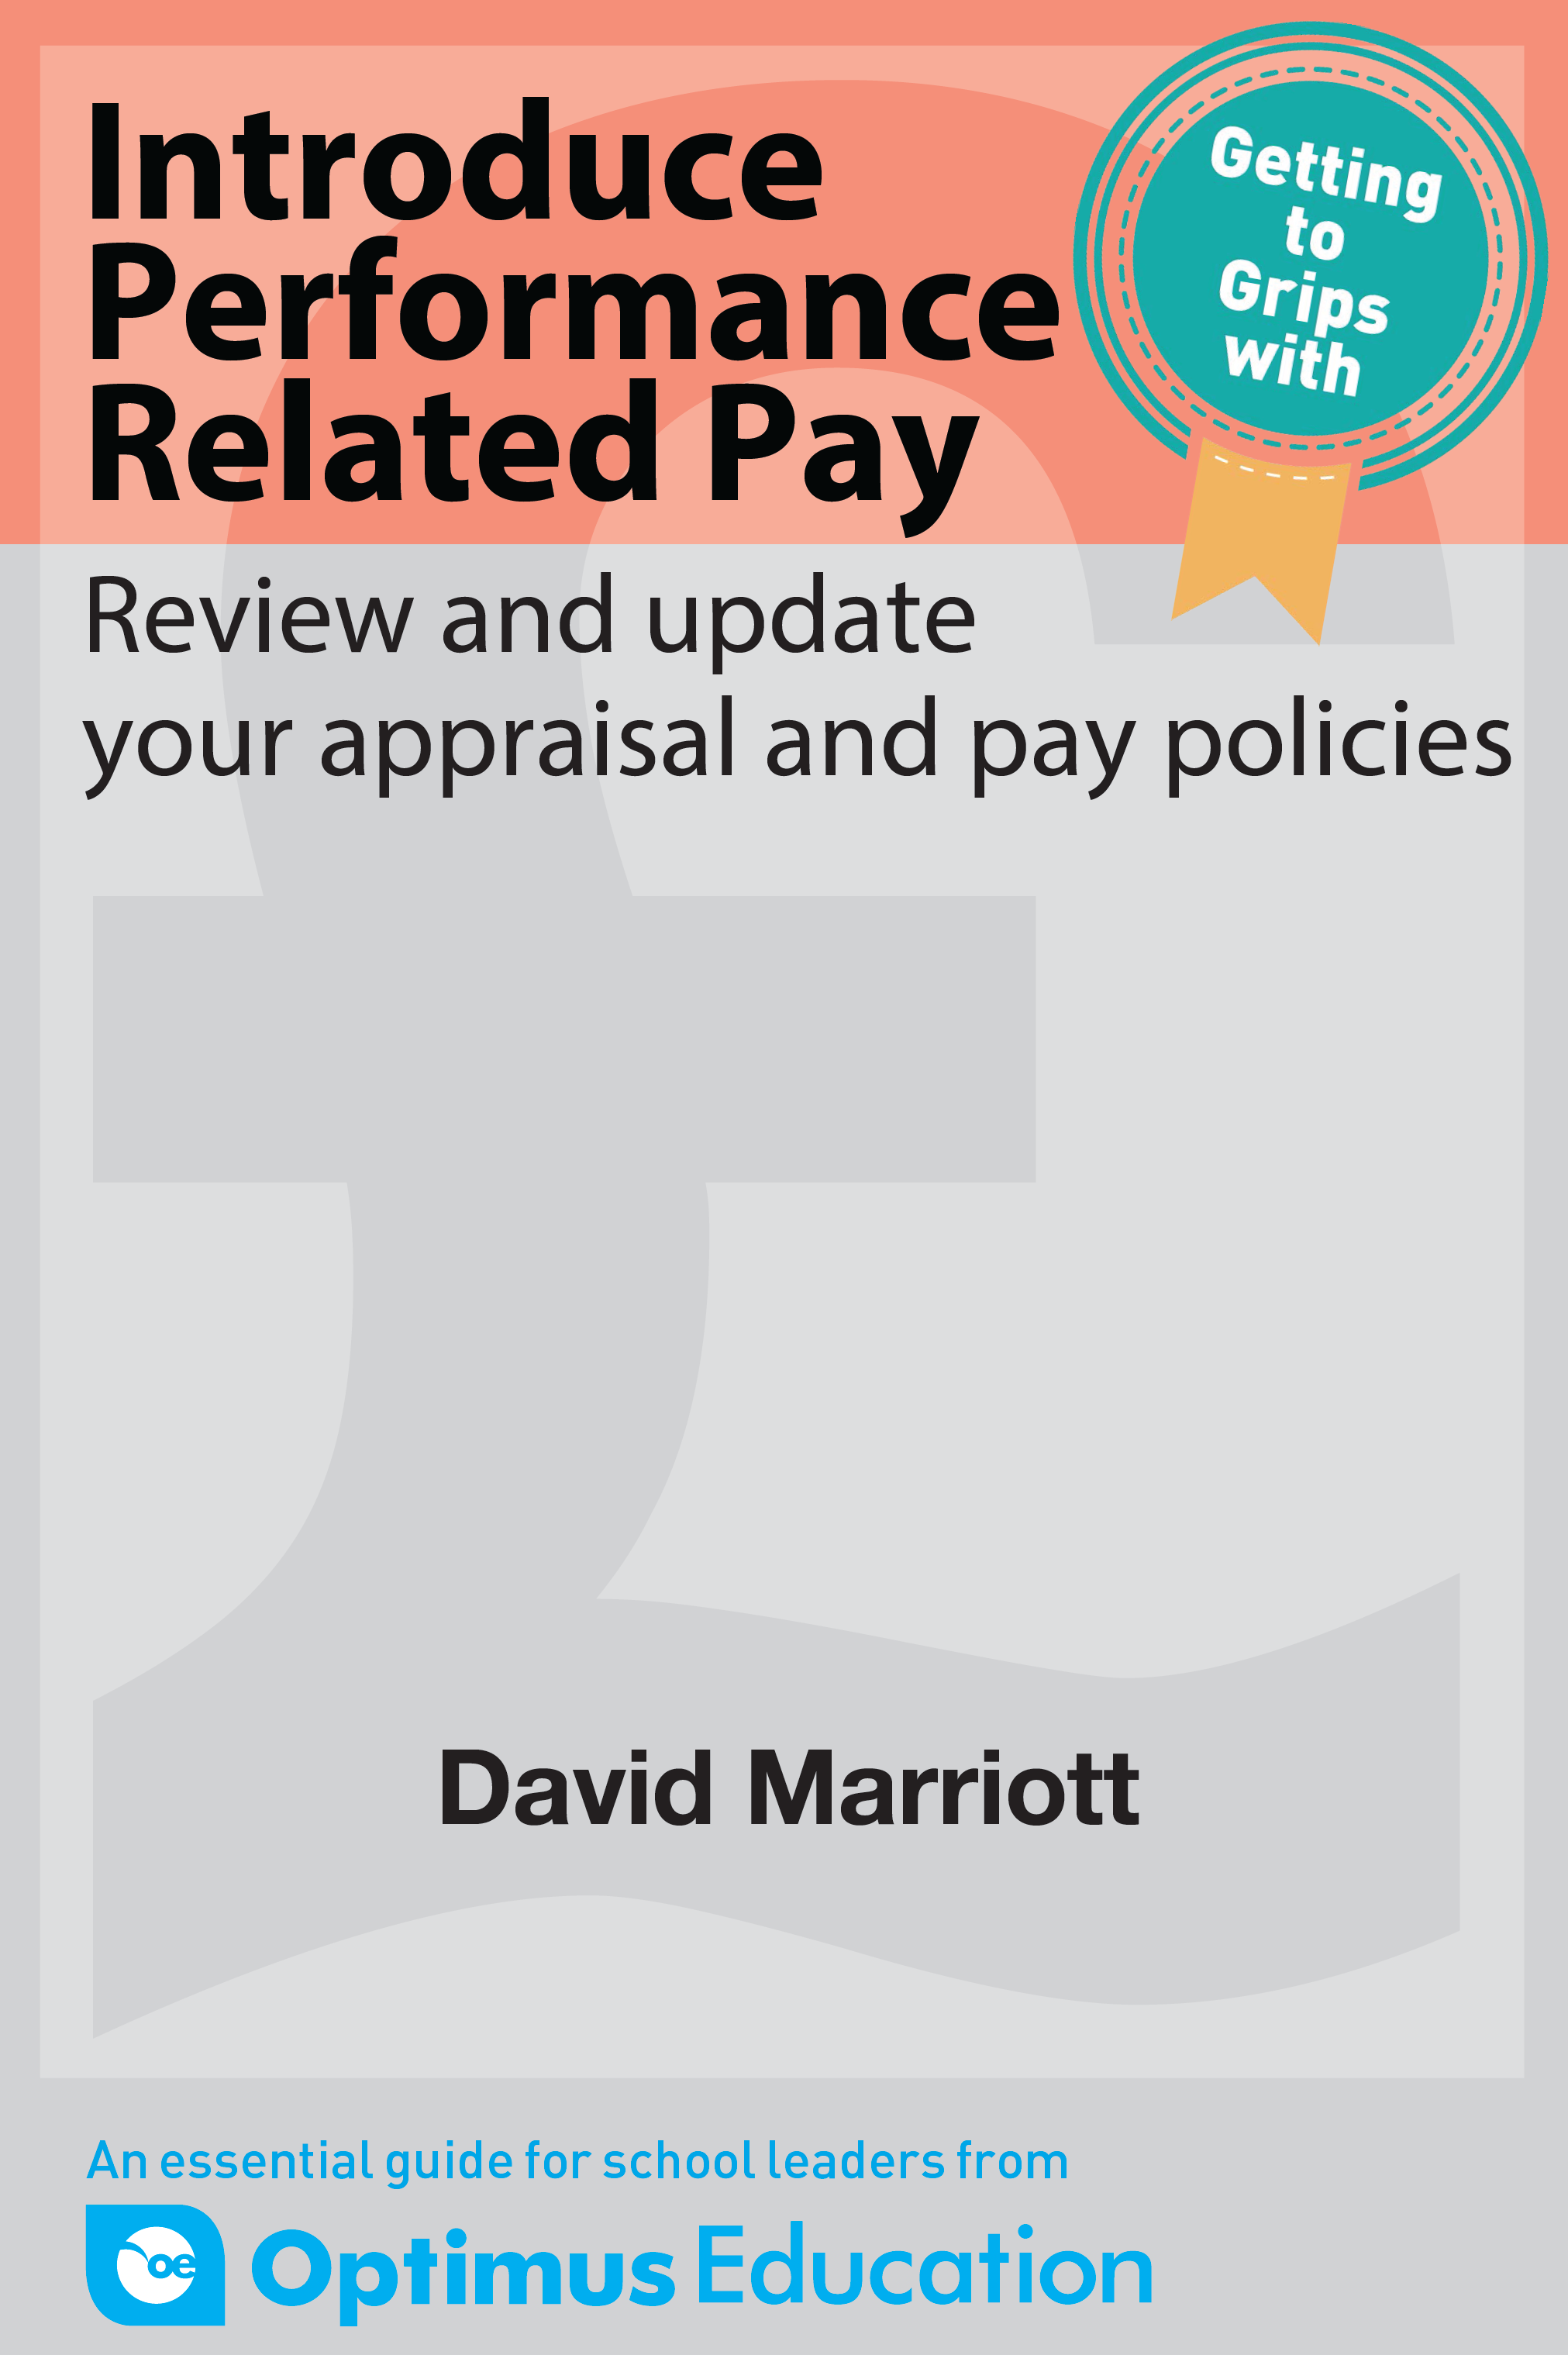 Introduce Performance Related Pay: Review and update your appraisal and pay policies